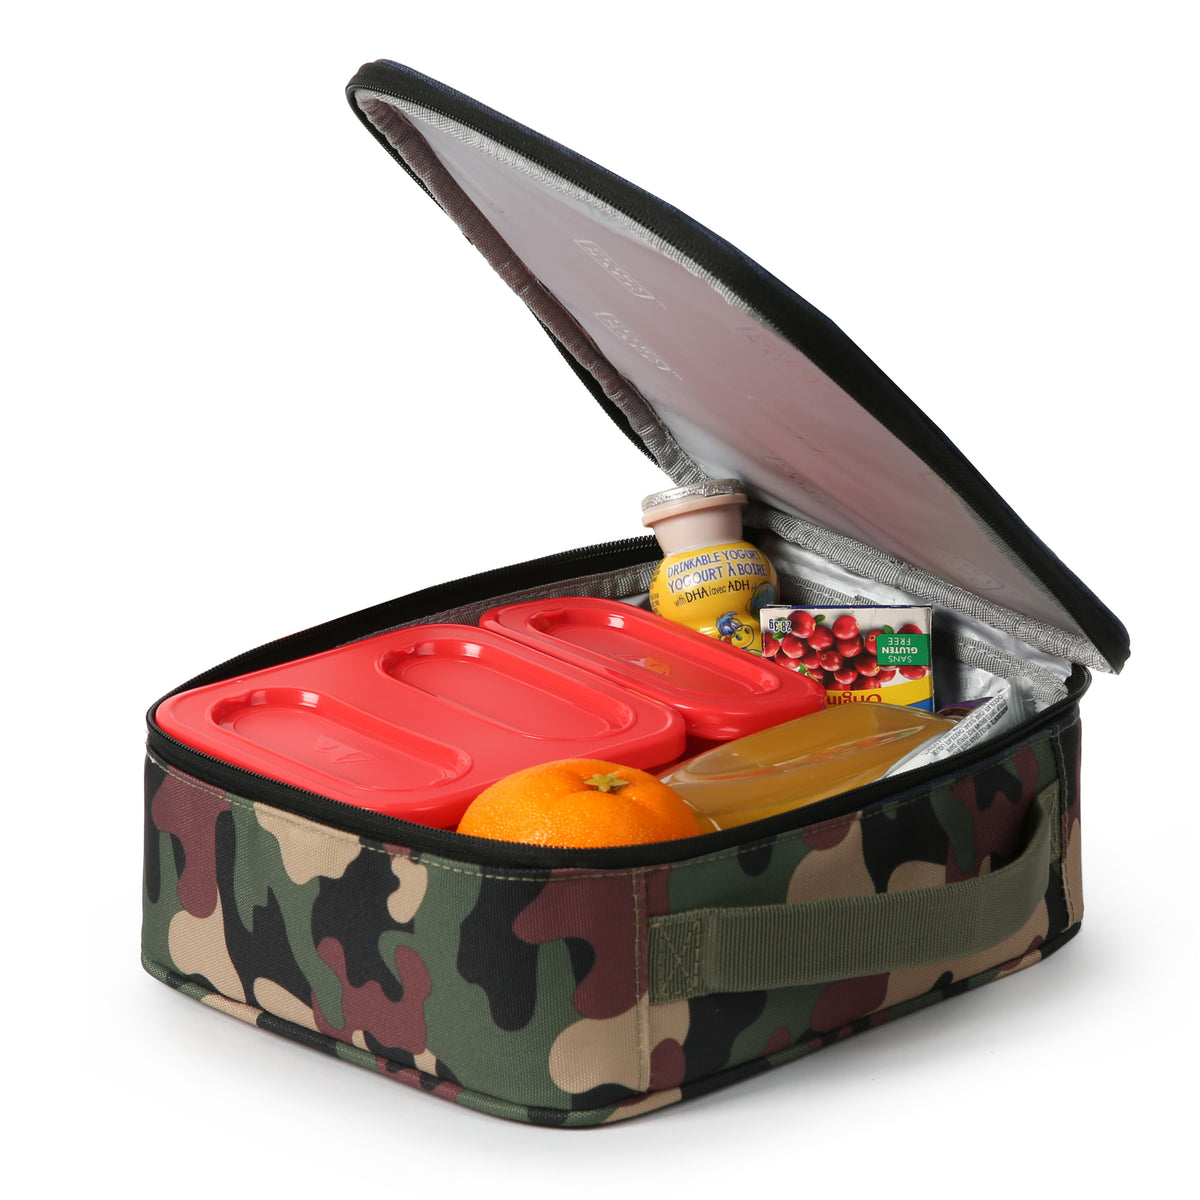 Arctic Zone® Classics Lunch Box - Camo - Open propped